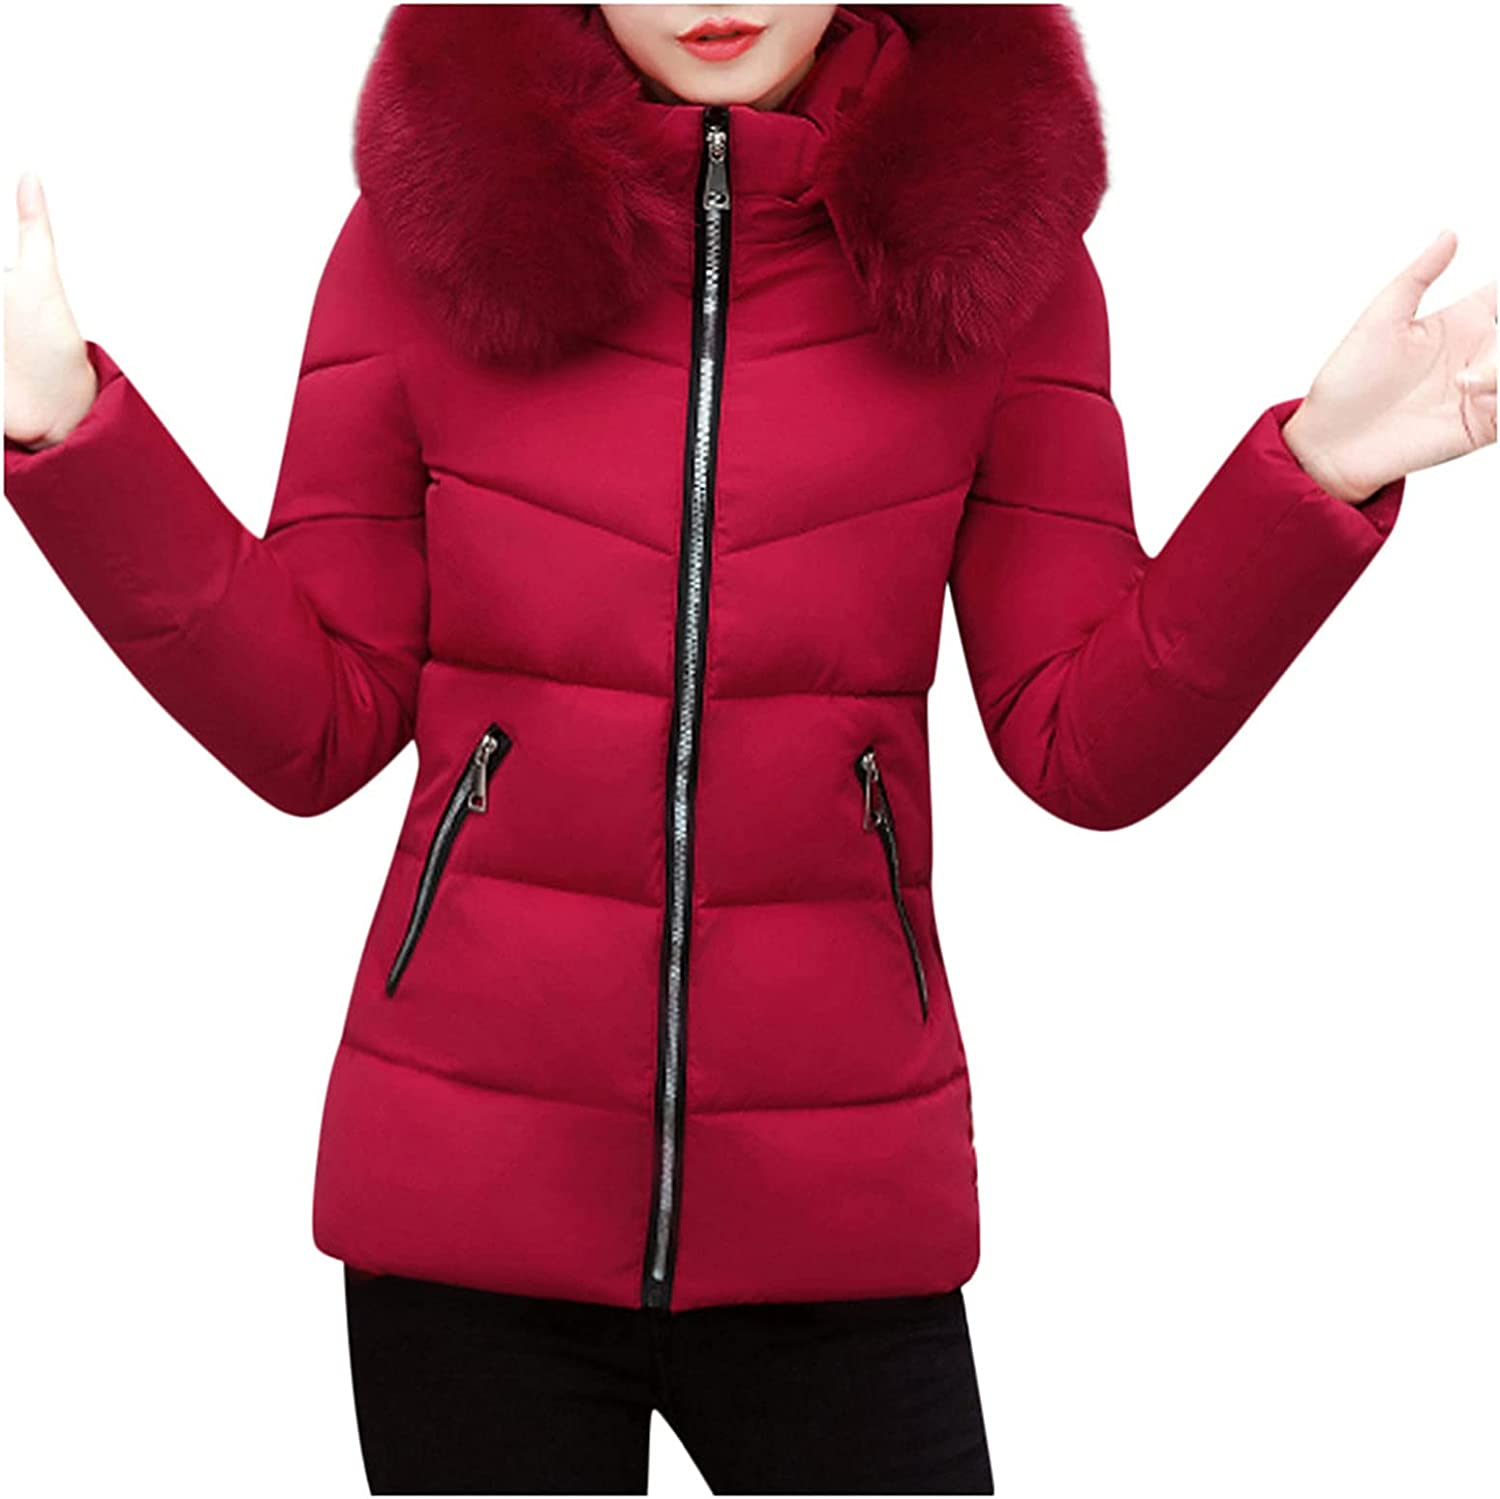 Messigaot Puffer Jacket Womens with Fur Hood Lapel Zip Pockets Quilted Parka Jacket Down Coat